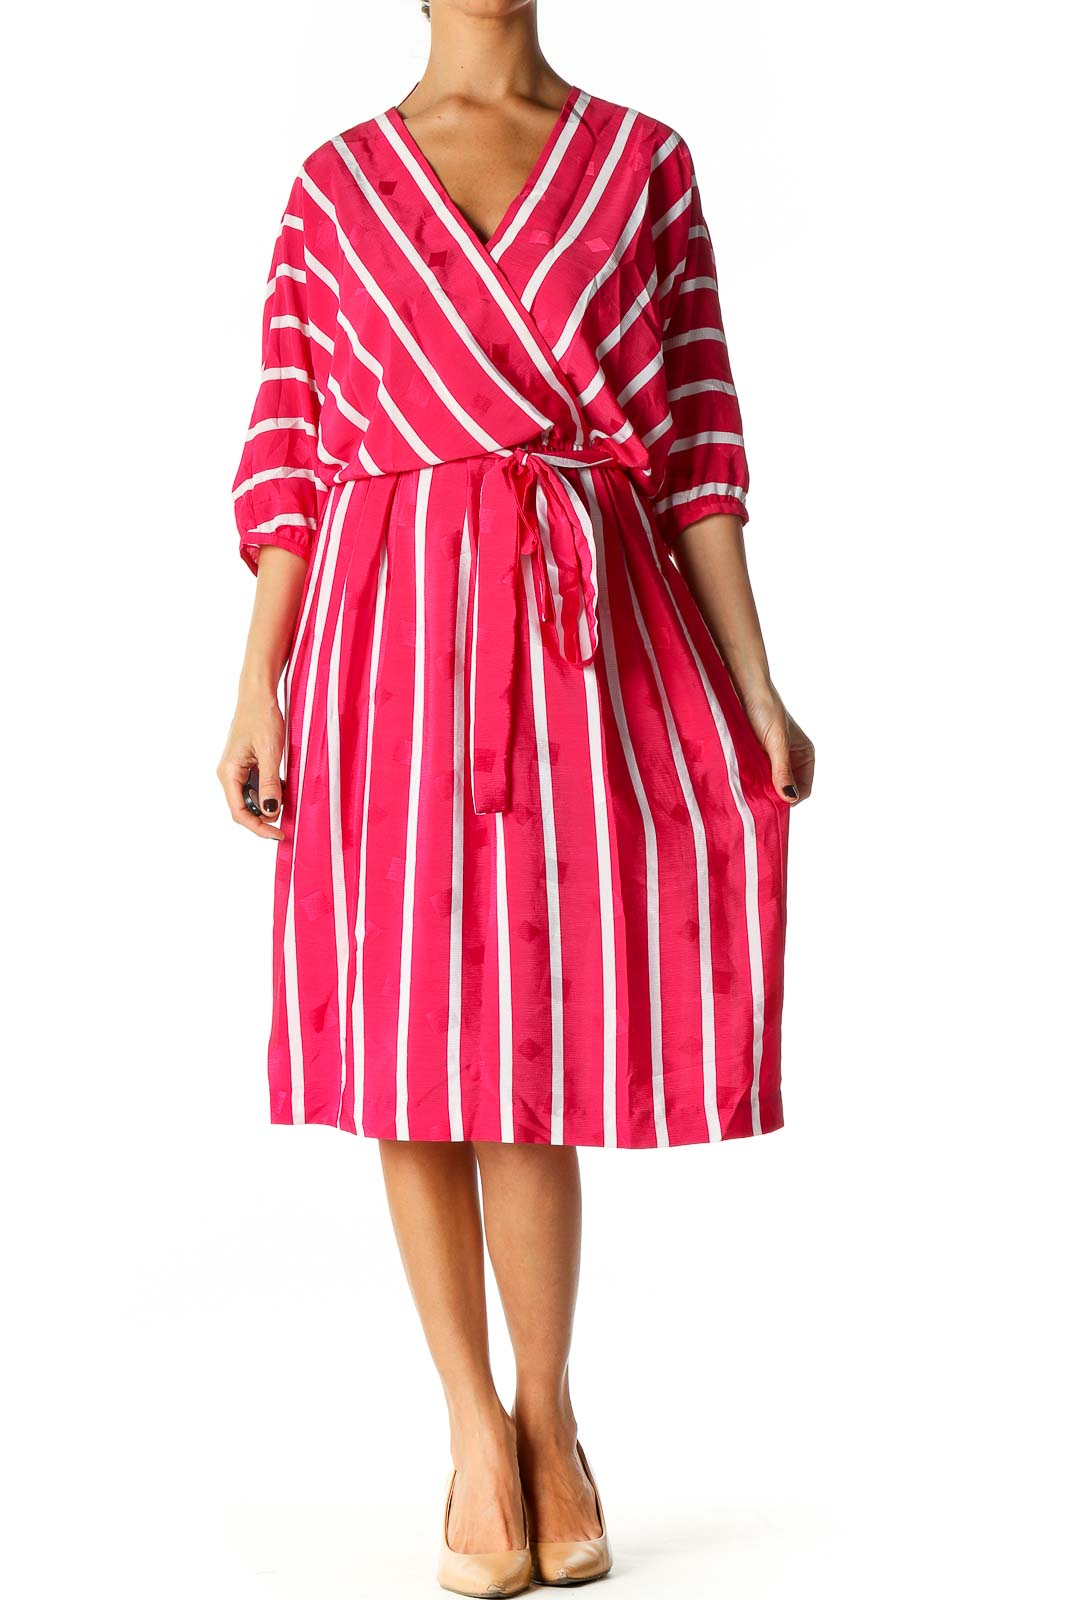 Pink Striped Retro Fit & Flare Dress Front